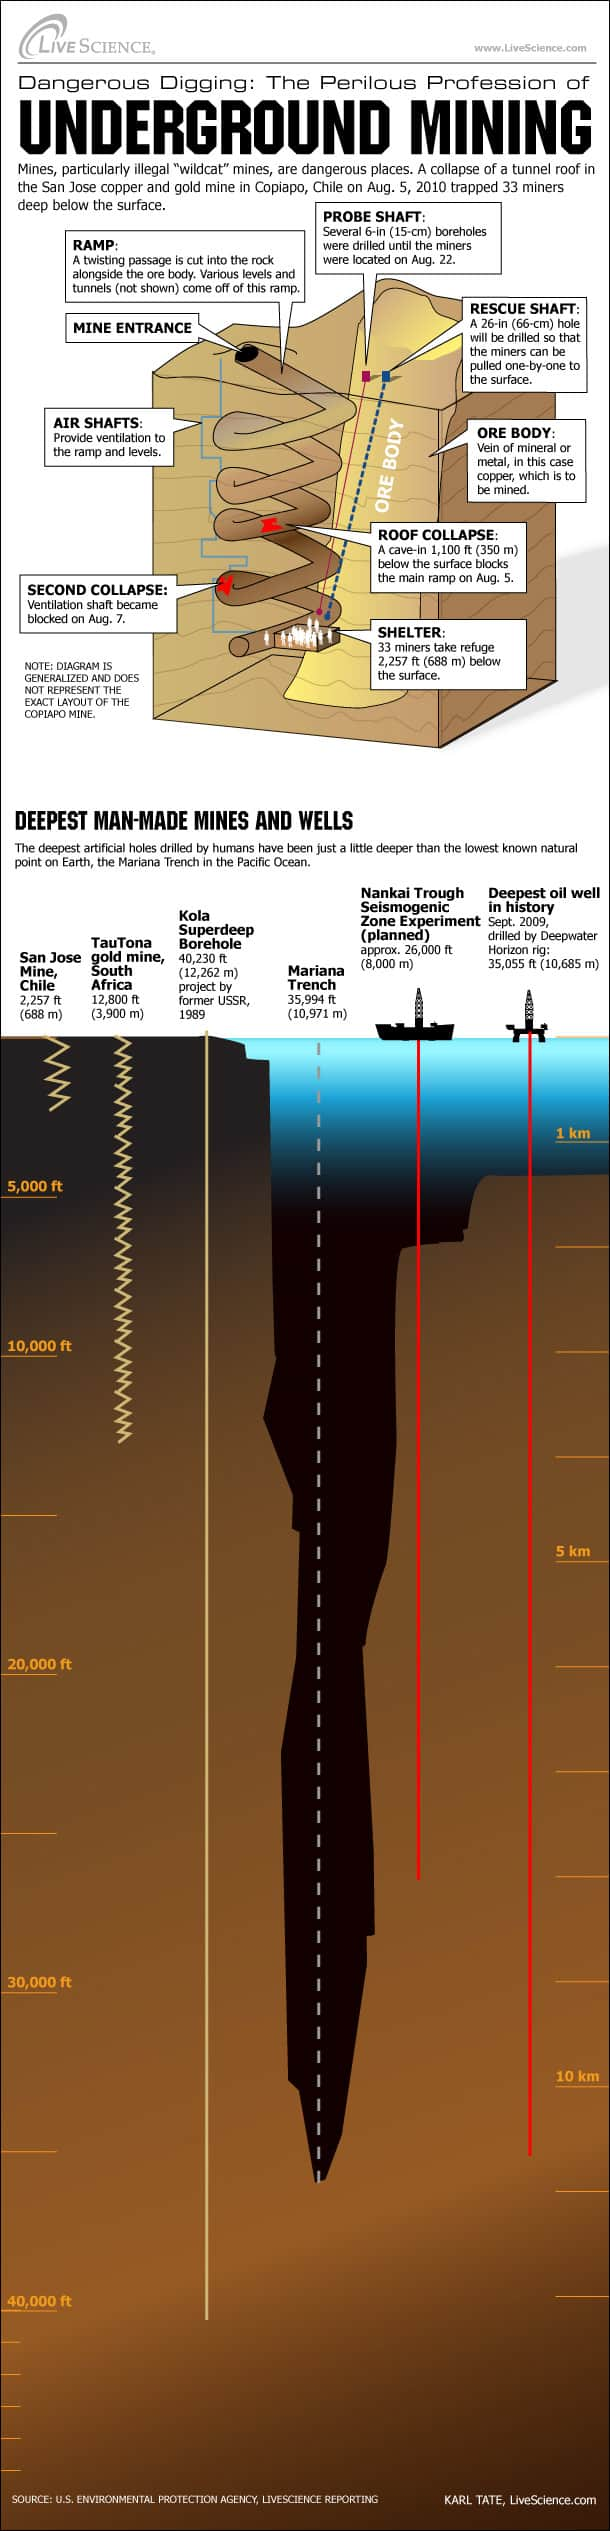 chile-gold-mine-infographic-100830-02